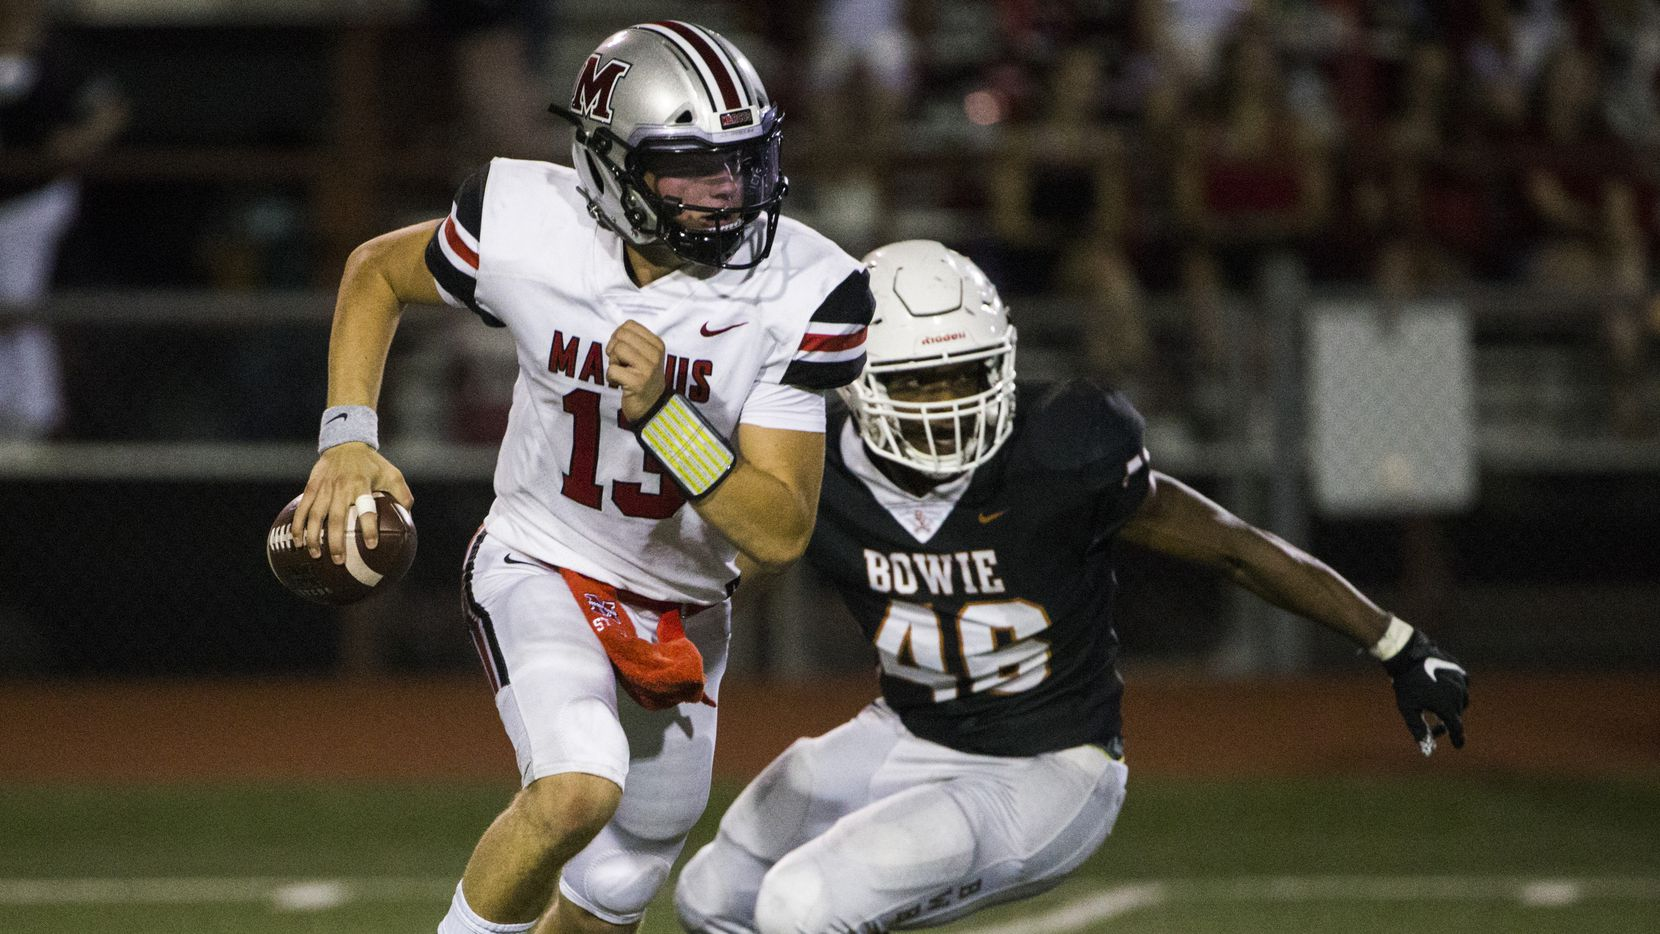 Flower Mound Marcus quarterback Garrett Nussmeier (13) is threatened by Arlington Bowie defensive lineman Anthony Starter (46) during the fourth quarter of a high school football game between Flower Mound Marcus and Arlington Bowie on Thursday, August 29, 2019 at Wilemon Field in Arlington.